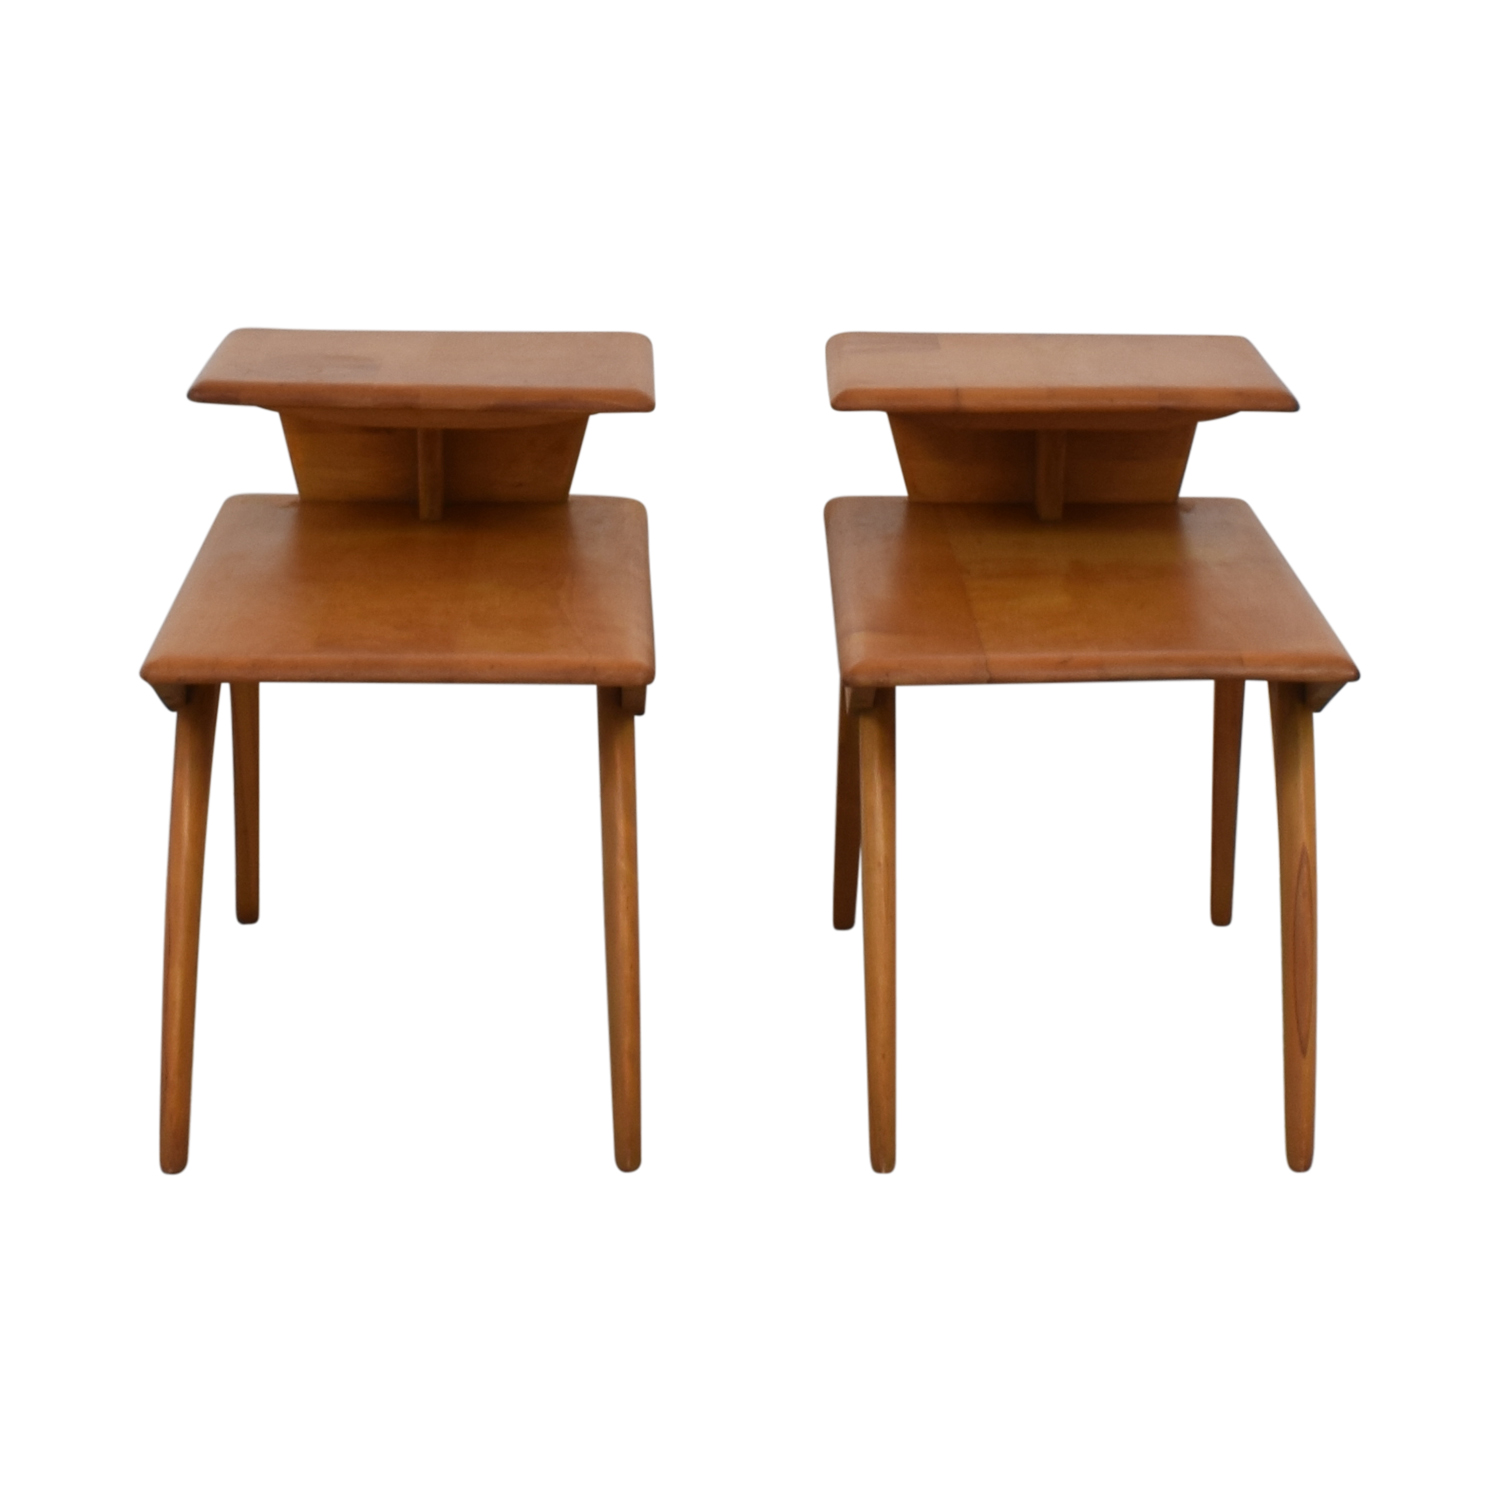 Heywood Wakefield Wood End Tables / End Tables